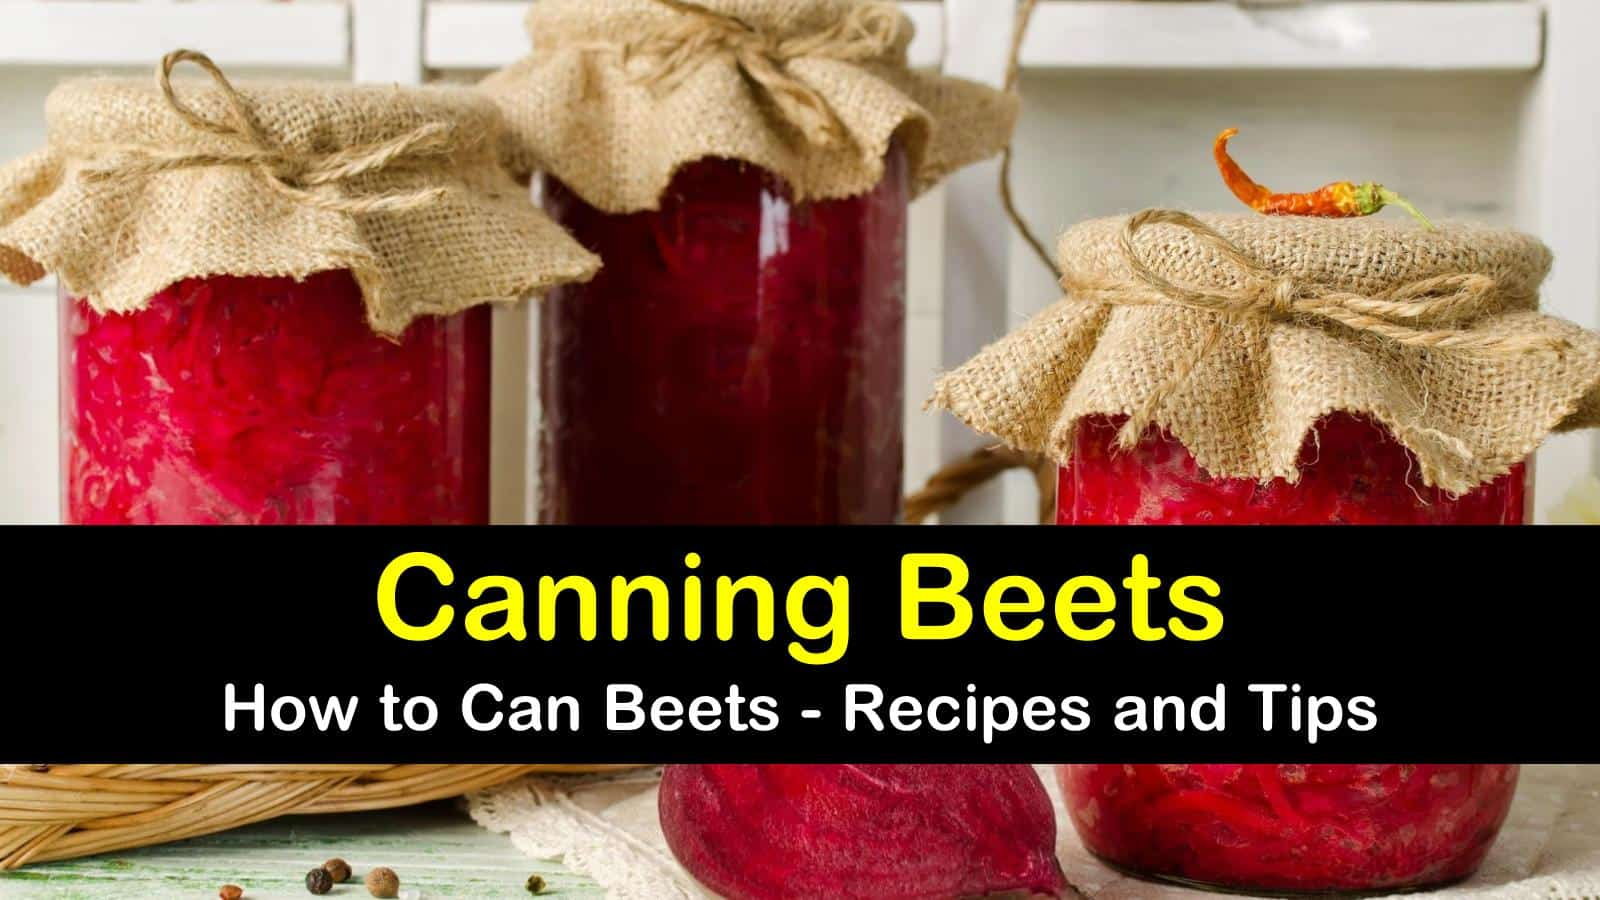 canning beets titleimg1